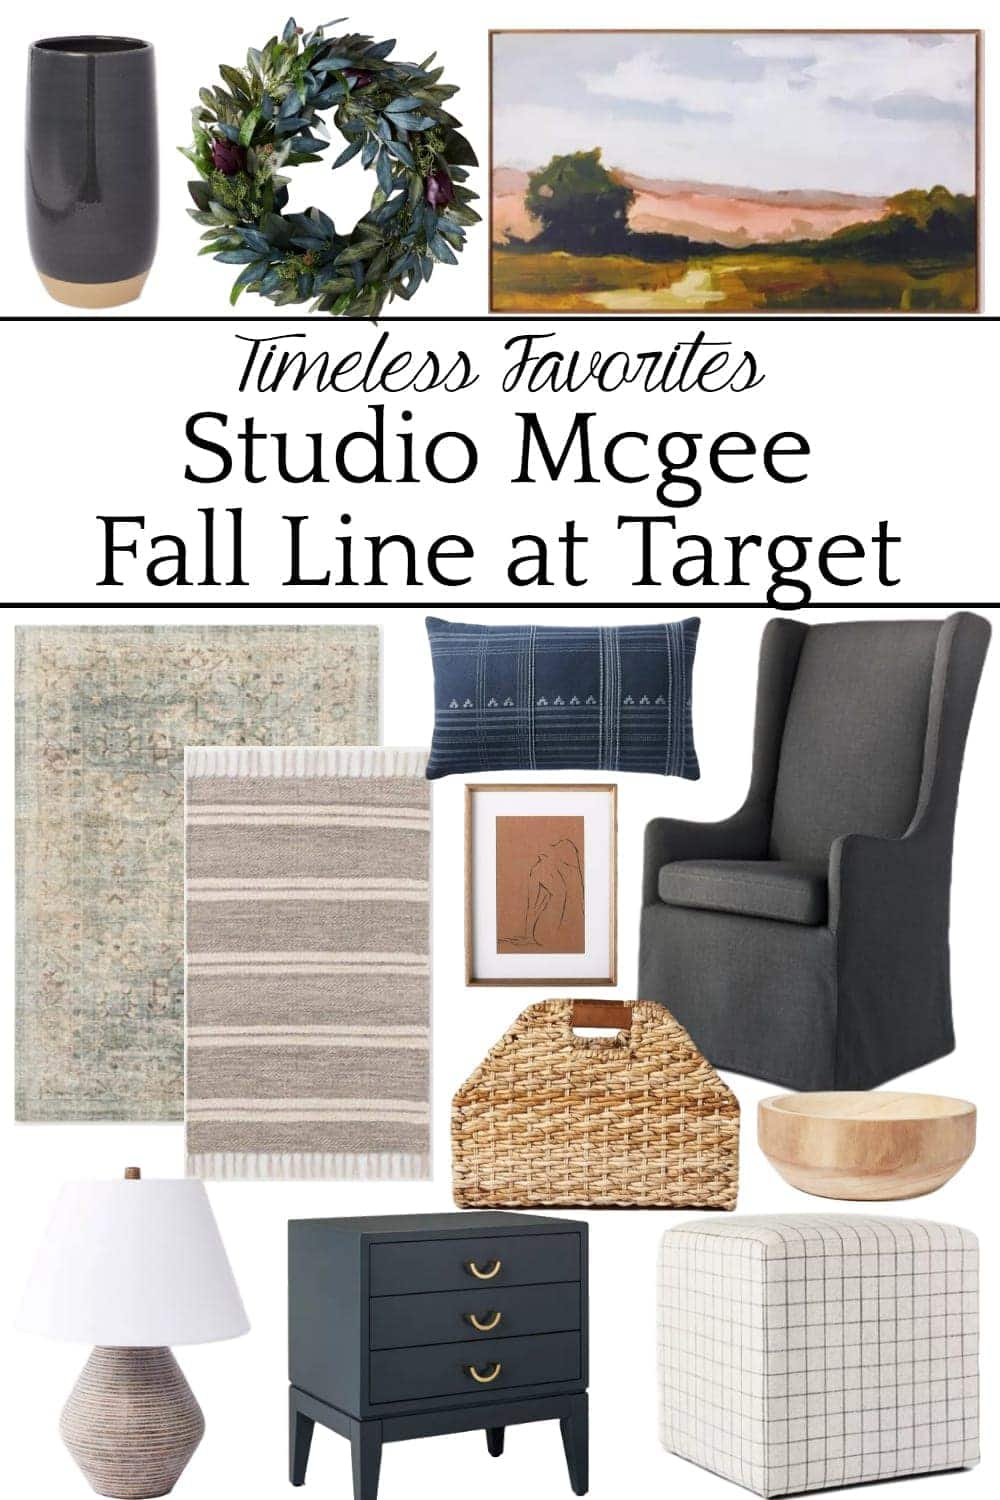 Timeless favorites Studio Mcgee Fall Line on target